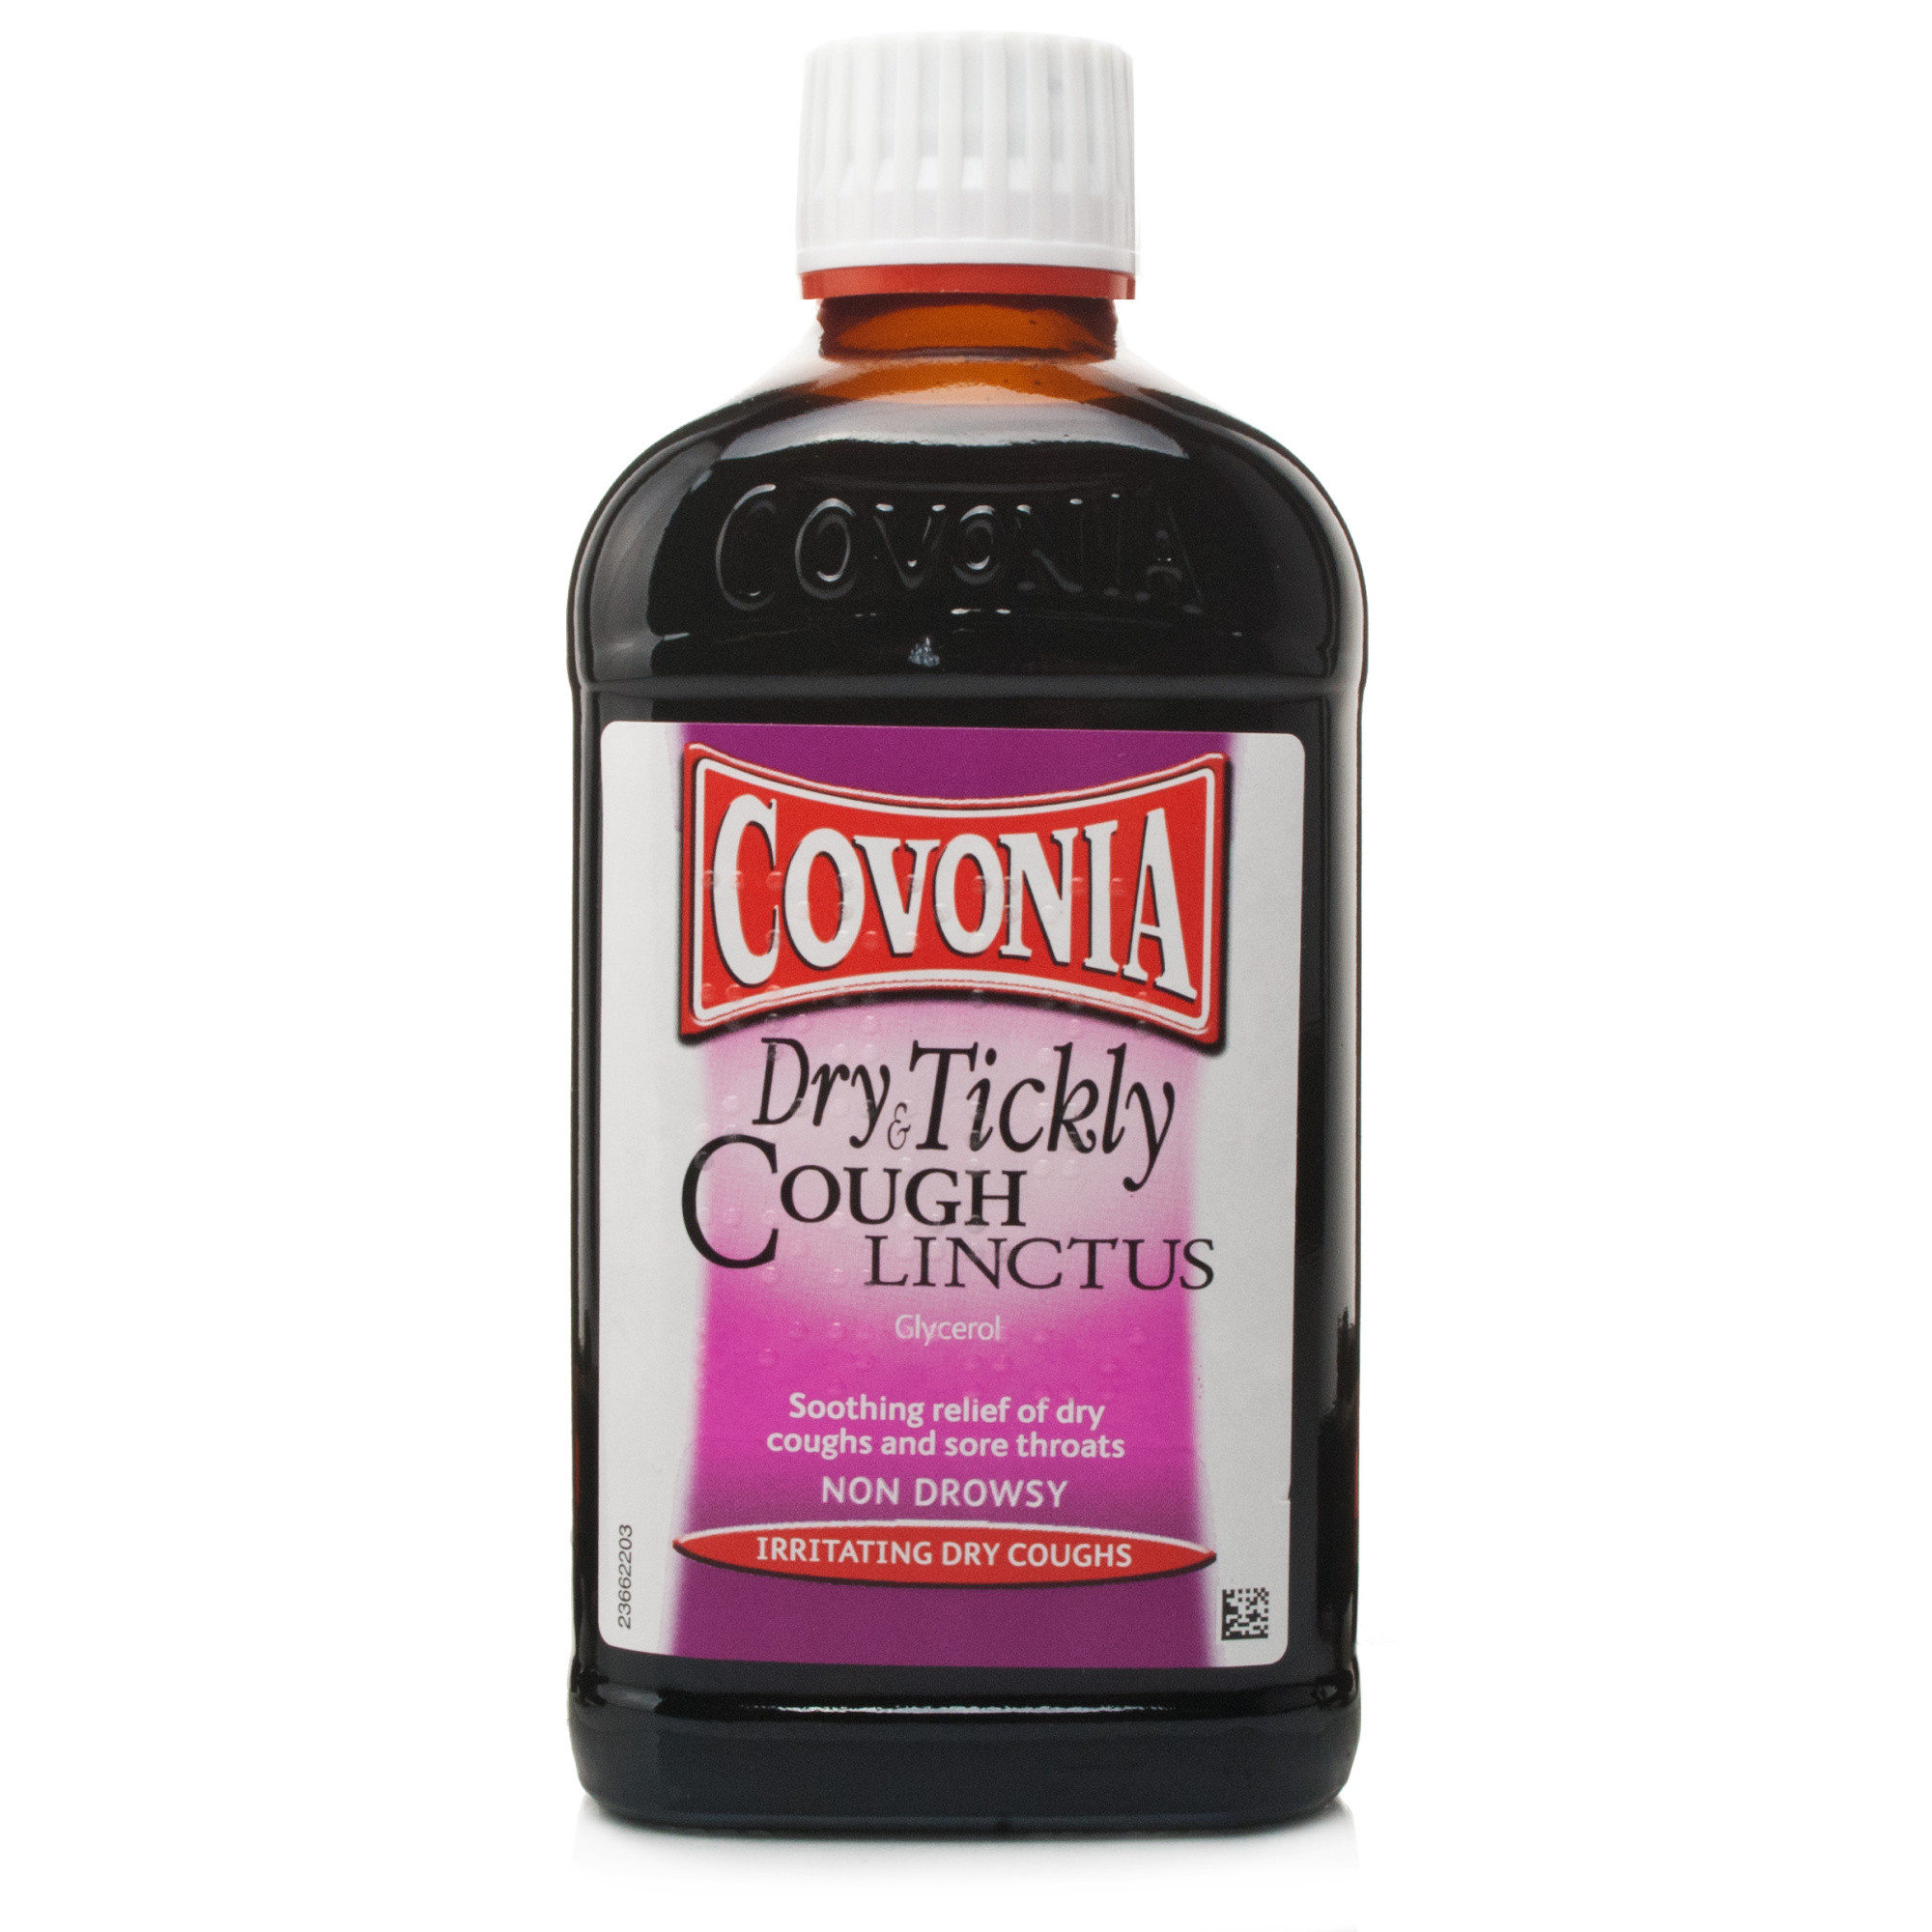 Covonia Dry And Tickly Linctus